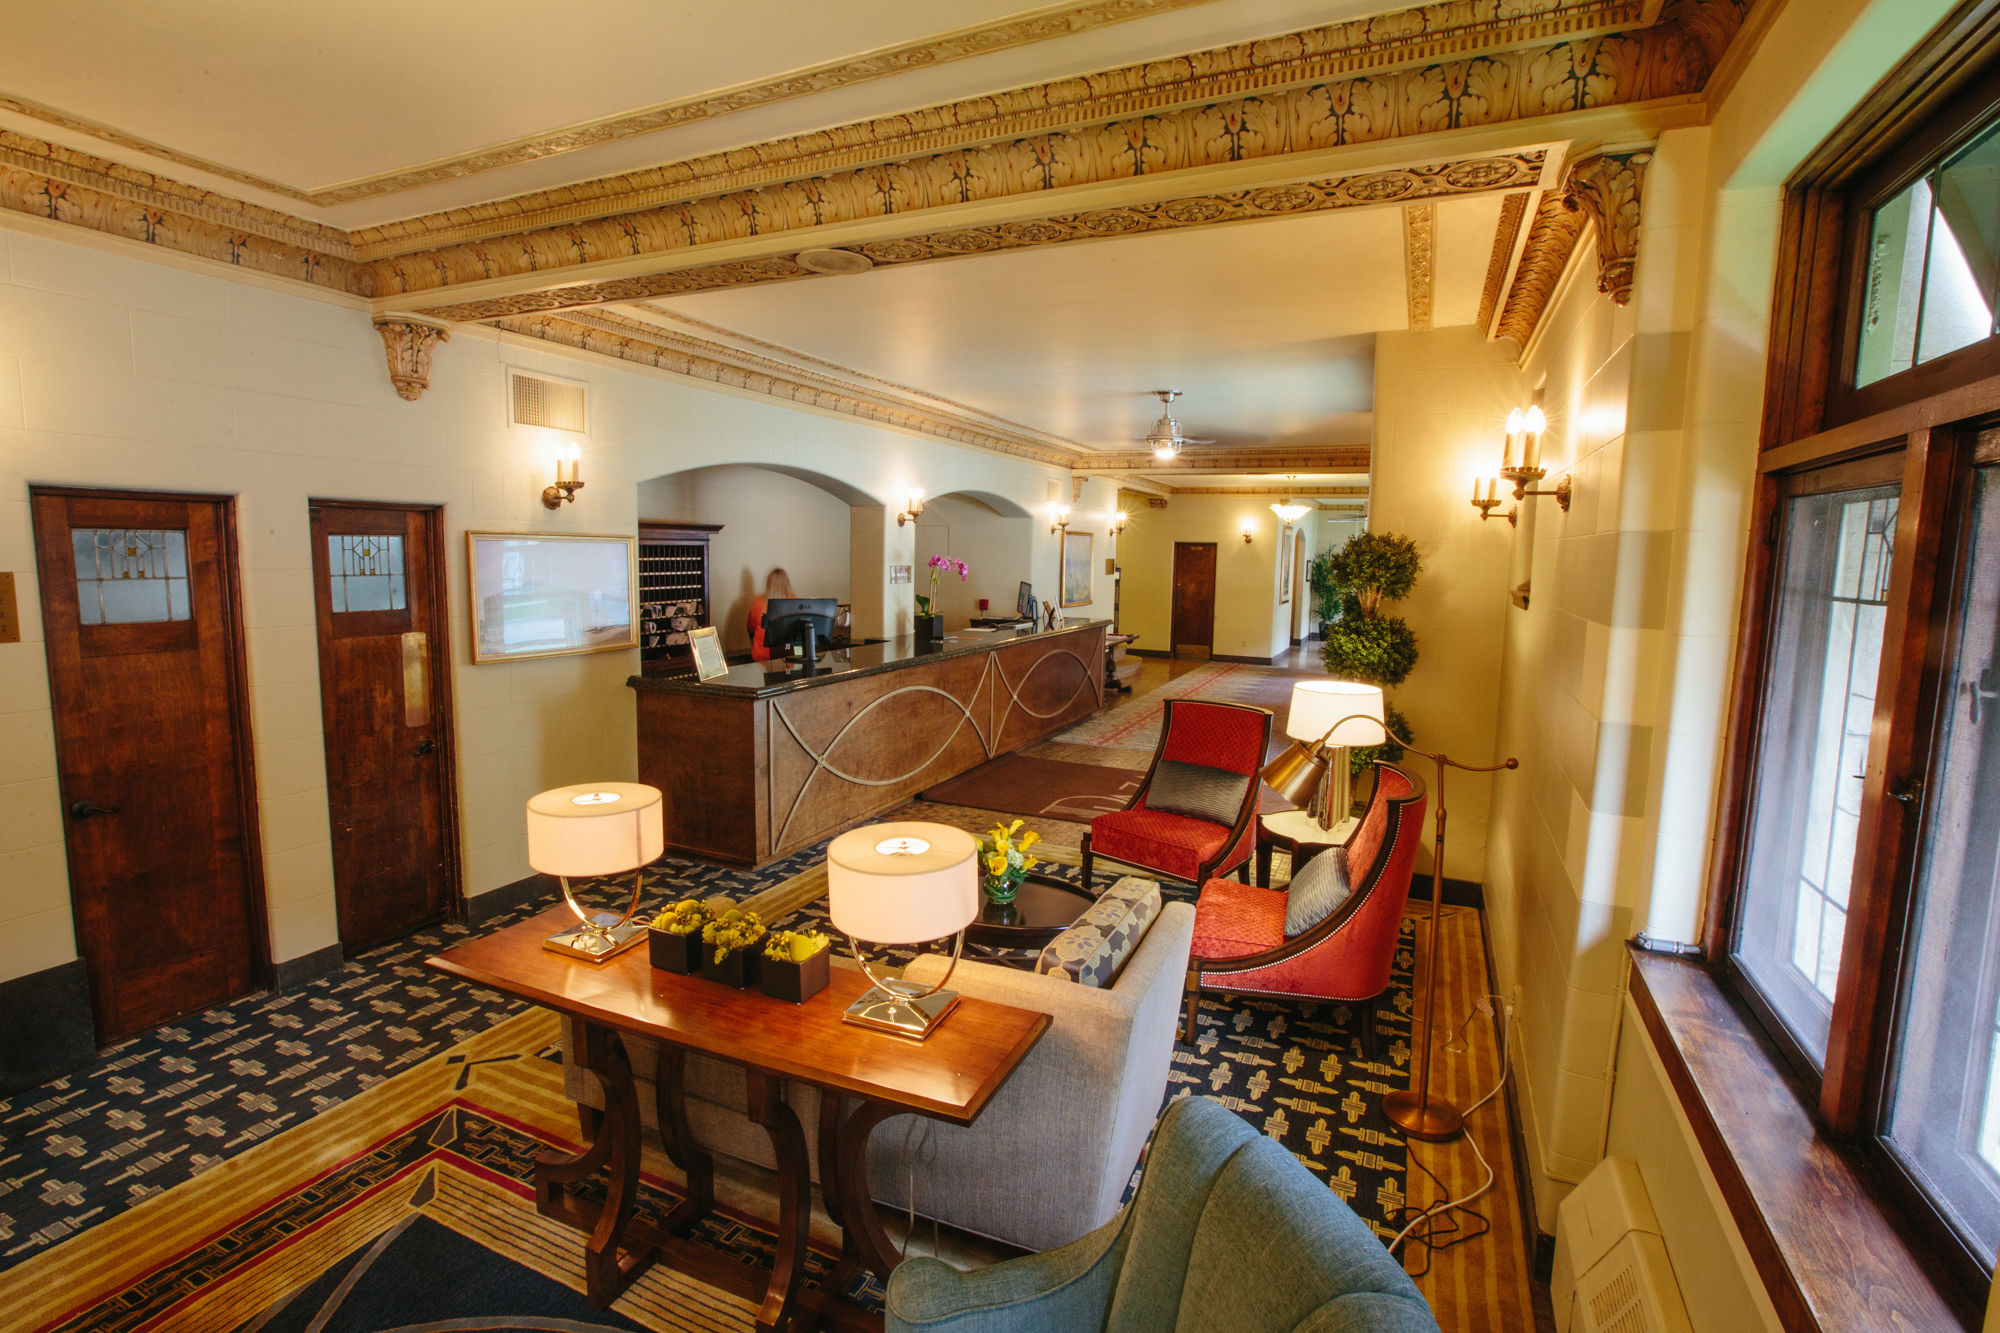 Milwaukee Hotel Coupons for Milwaukee, Wisconsin - FreeHotelCoupons.com